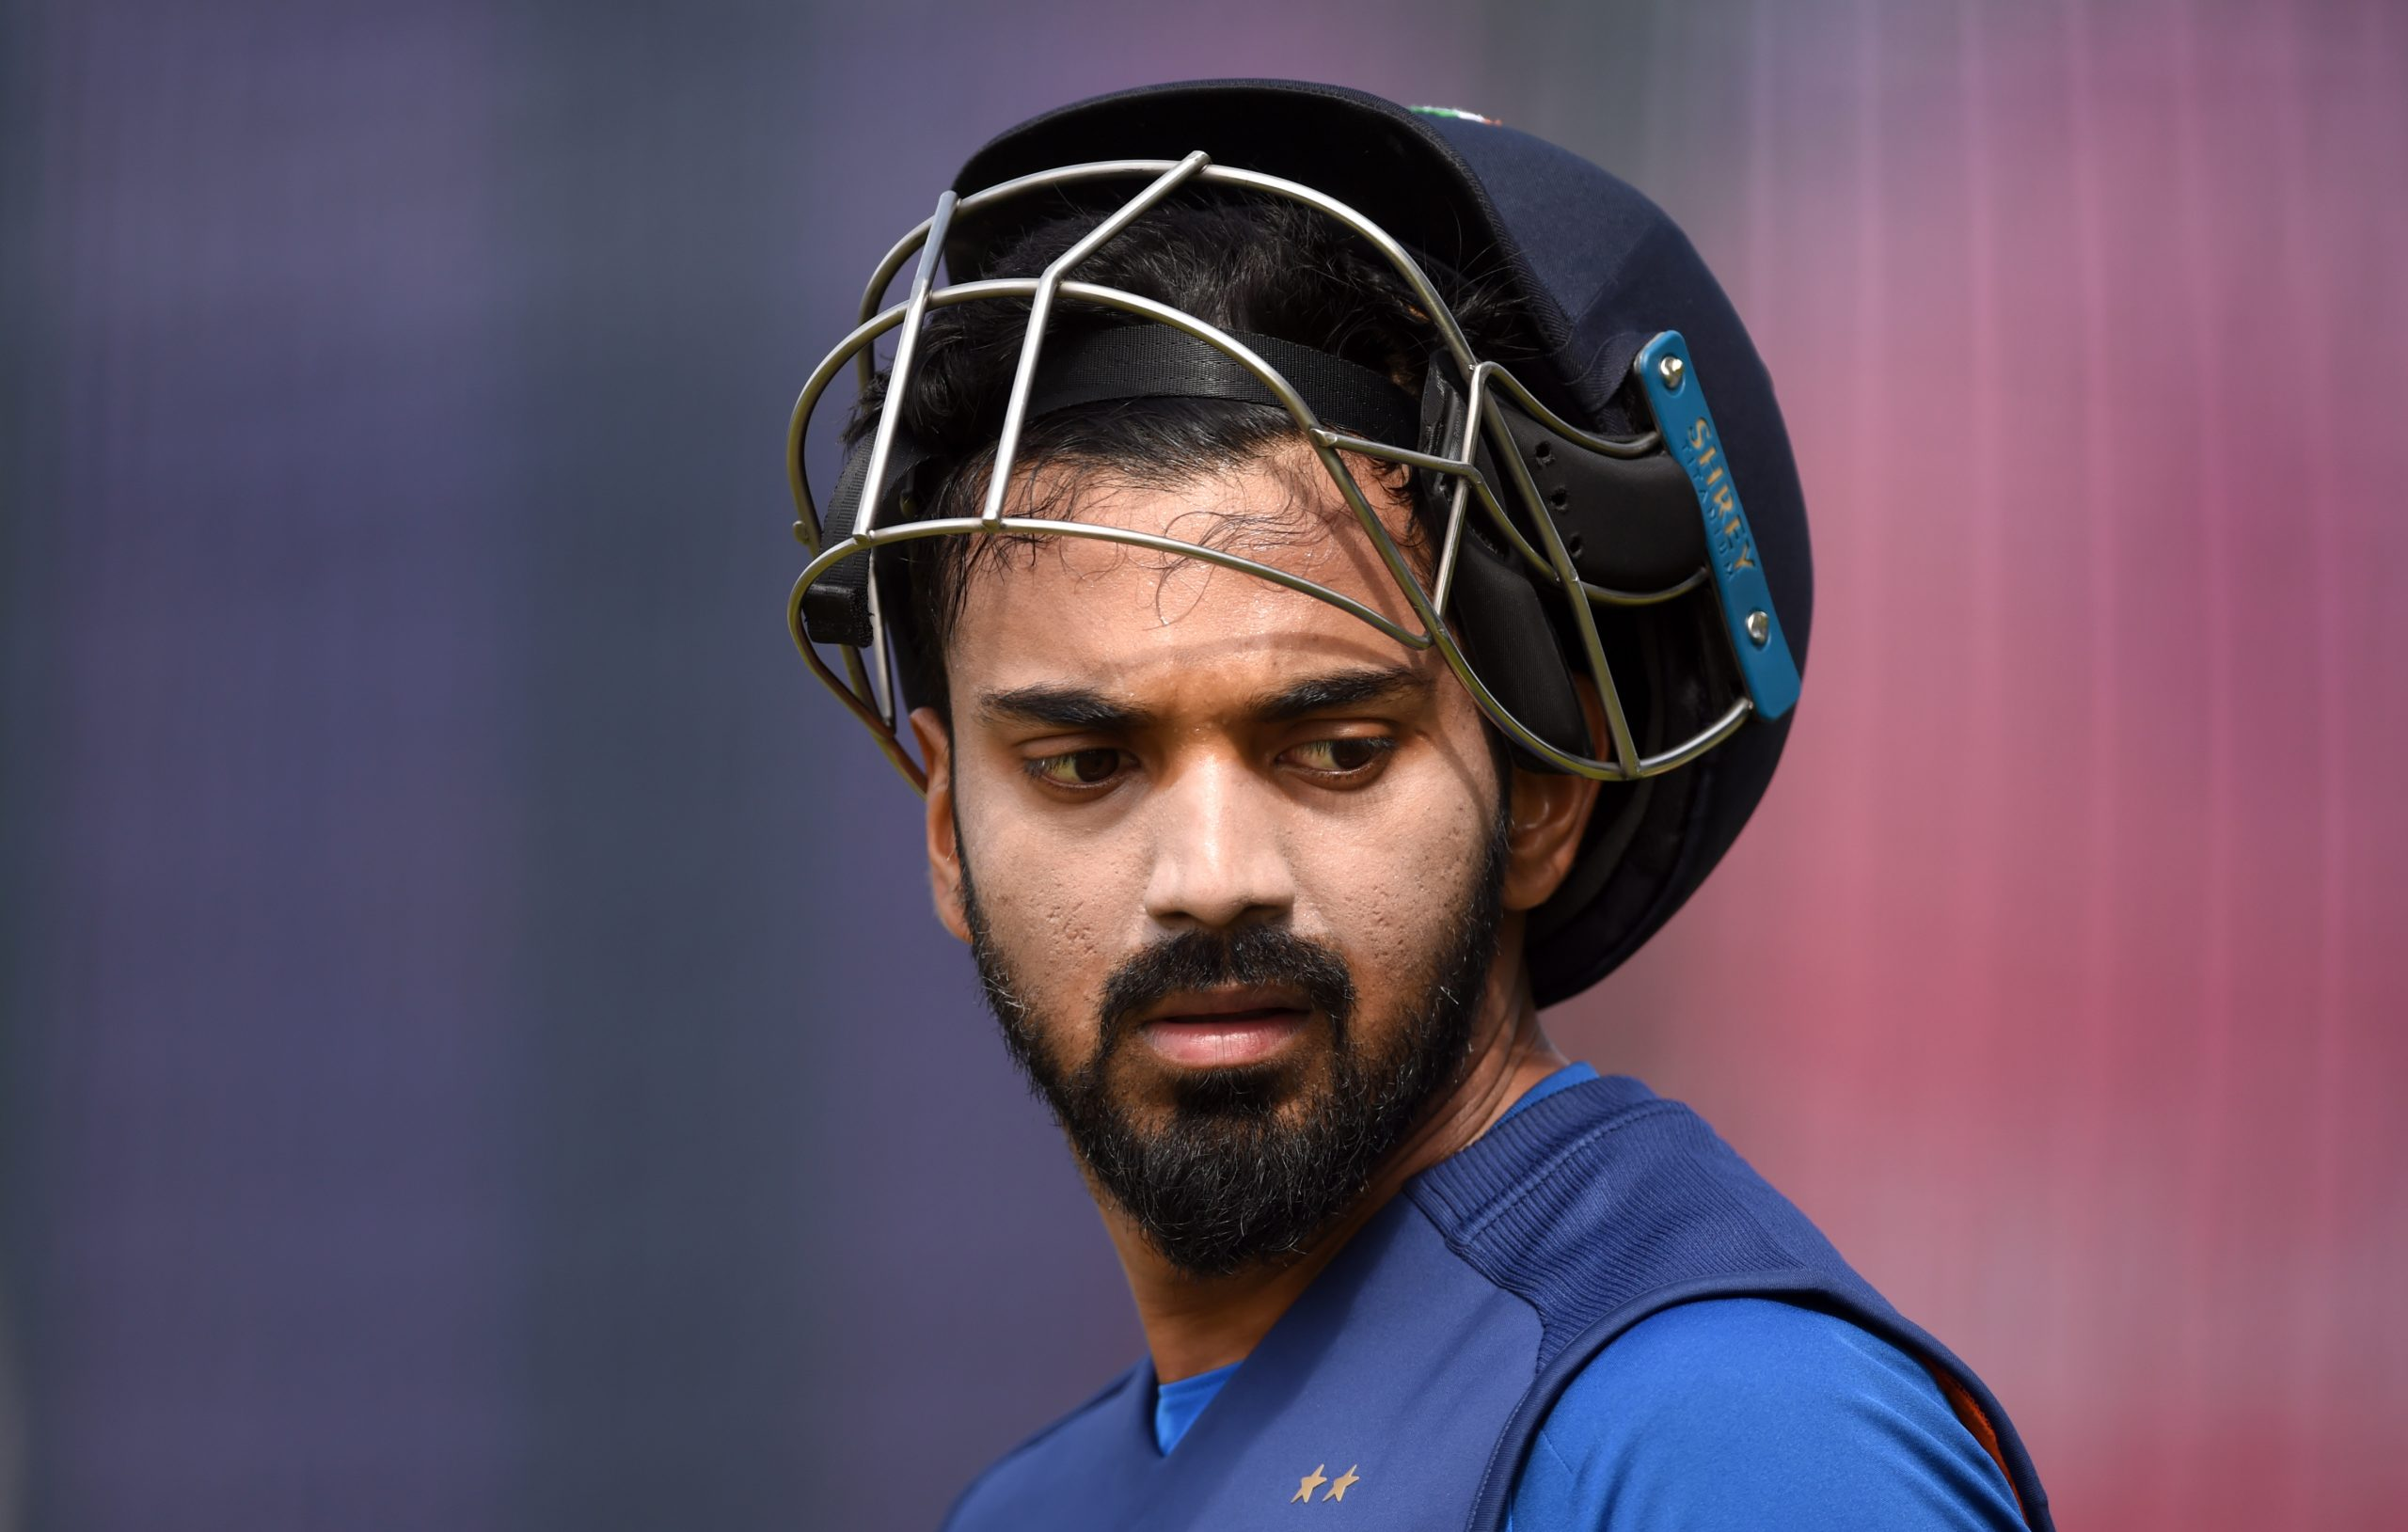 MANCHESTER, ENGLAND - JULY 08: Lokesh Rahul of India during a net session at Old Trafford on July 08, 2019 in Manchester, England. (Photo by Gareth Copley/Getty Images)